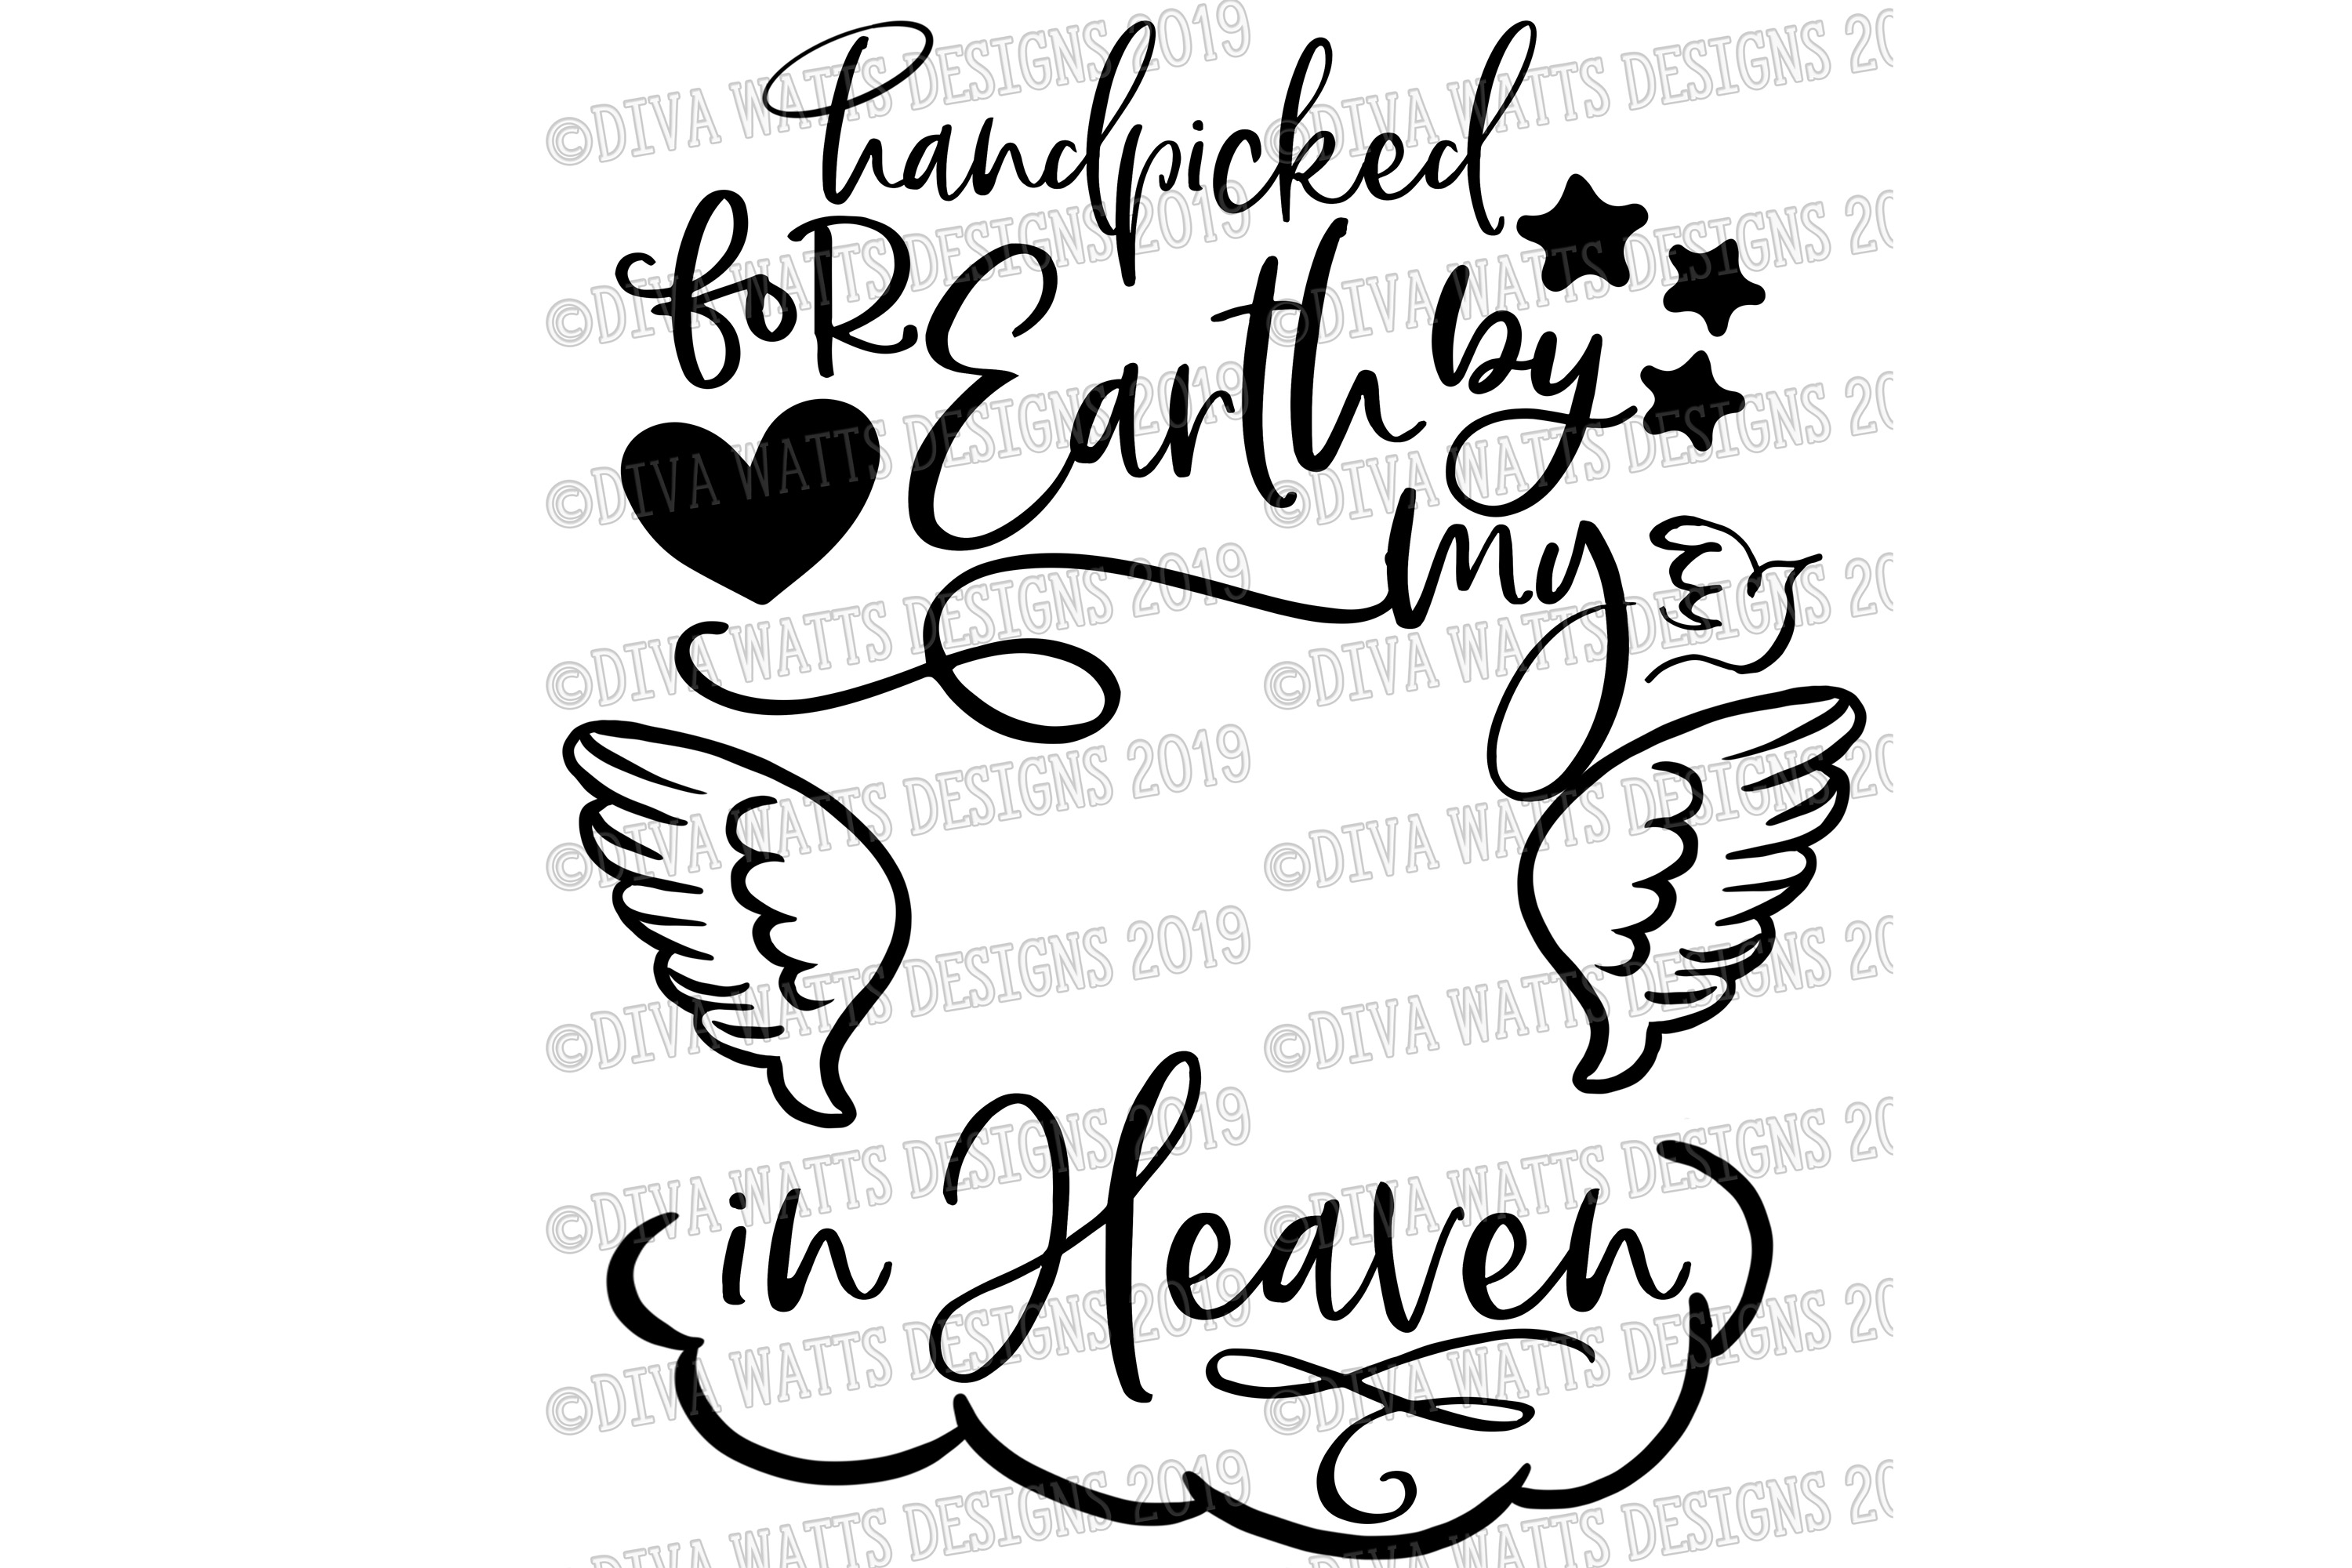 Handpicked for Earth by my Sibling in Heaven Rainbow Baby example image 4